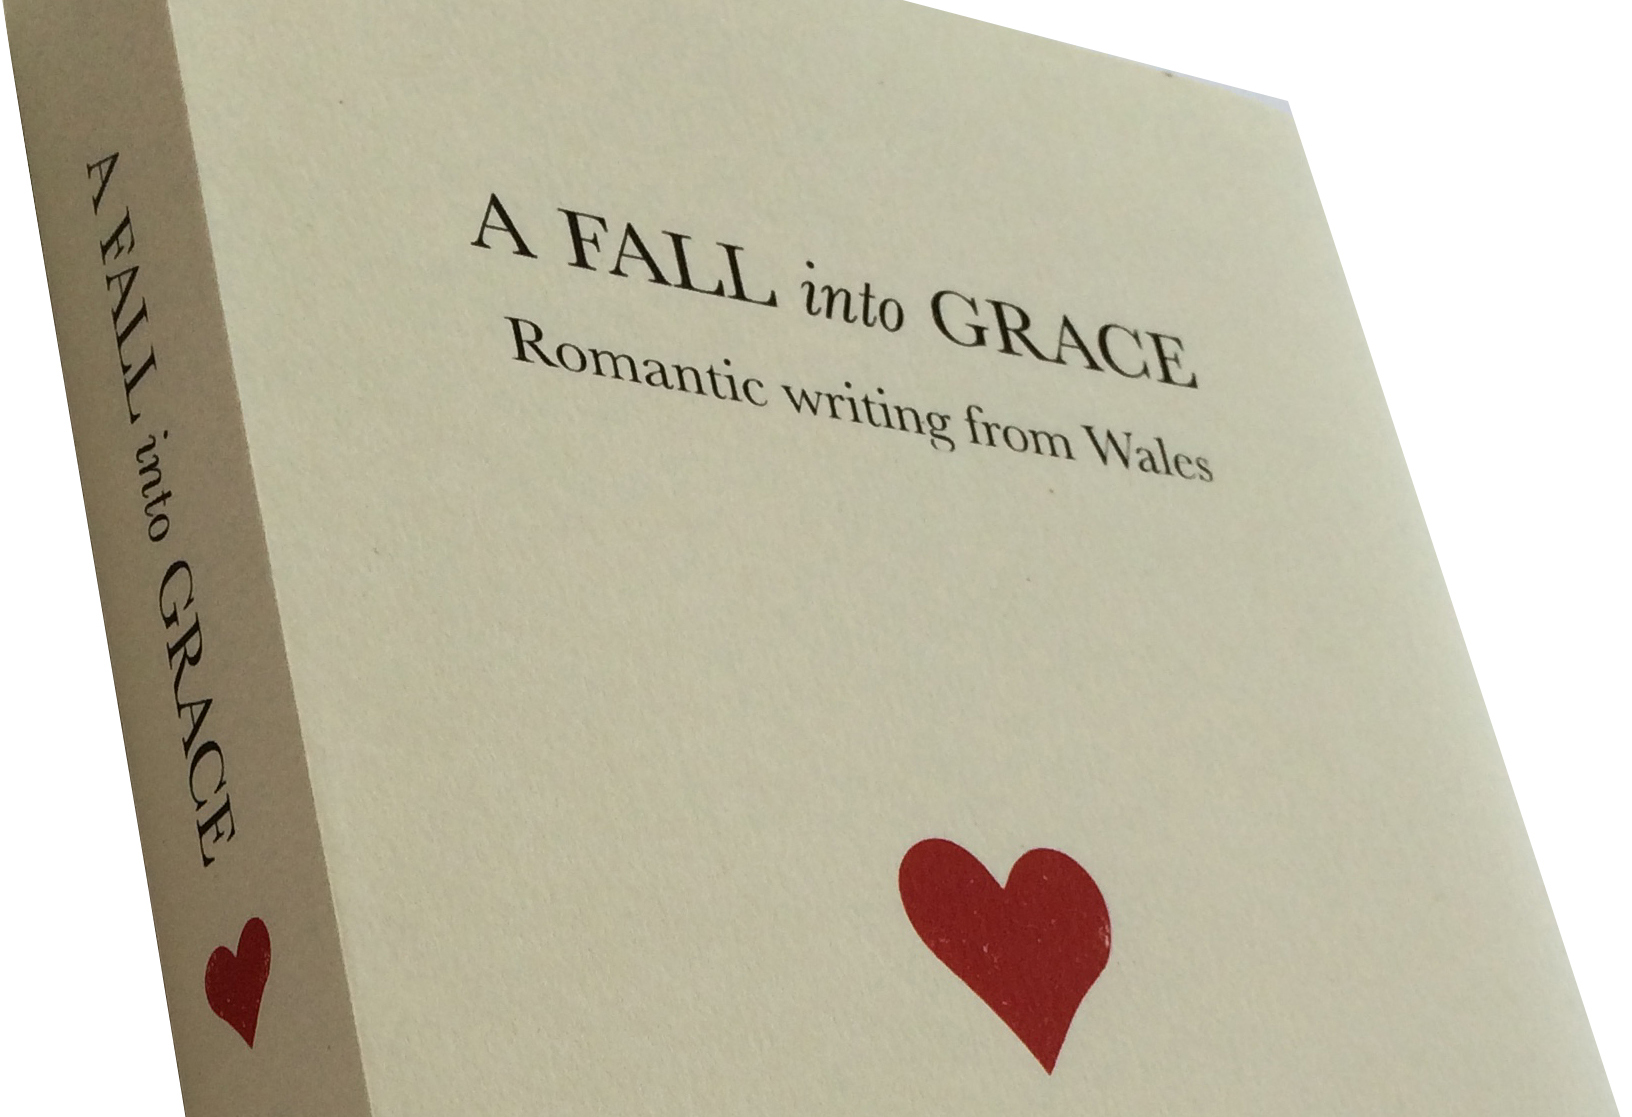 A Fall into Grace: Book of Romantic Love Stories from Wales Launched